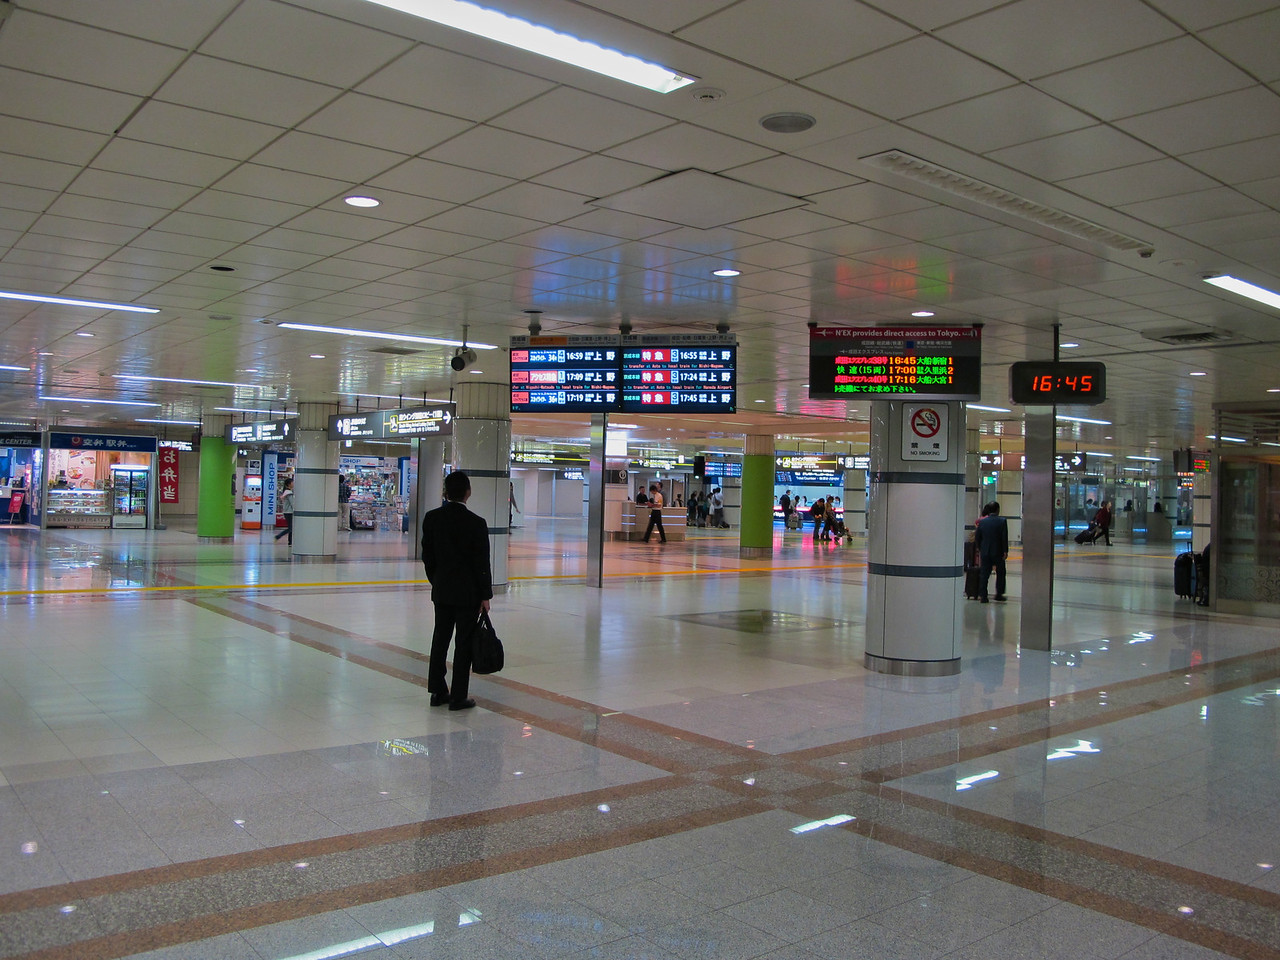 Narita Airport sits about 1 hour and 20 minutes by train from Tokyo.